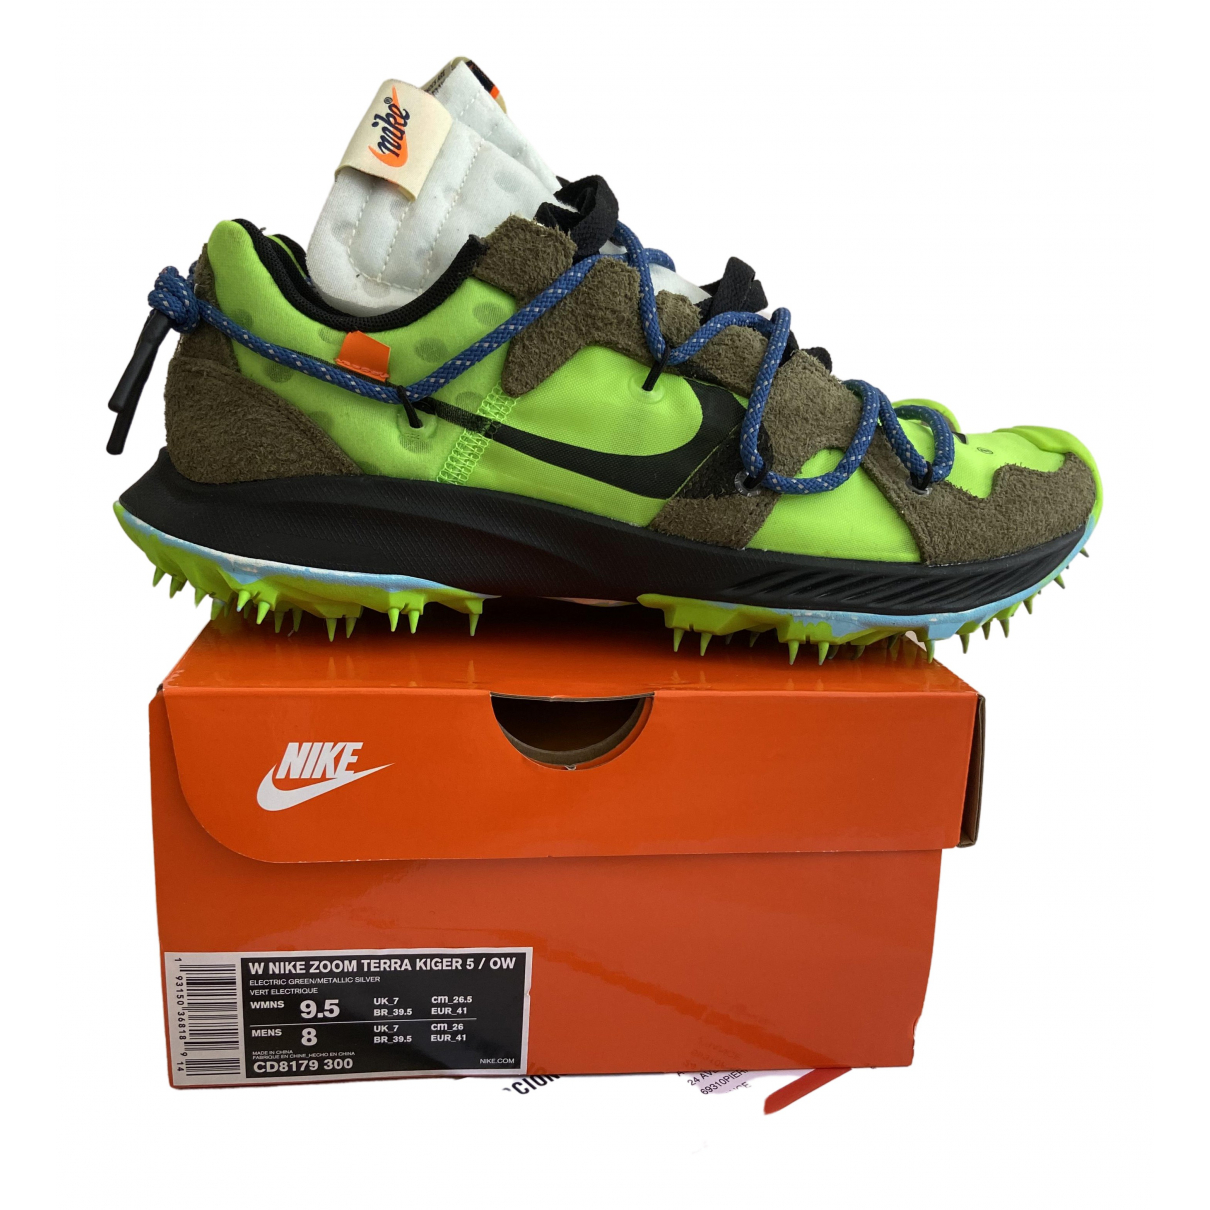 Nike X Off-white Zoom Terra Kiger 5 Green Trainers for Men 41 EU